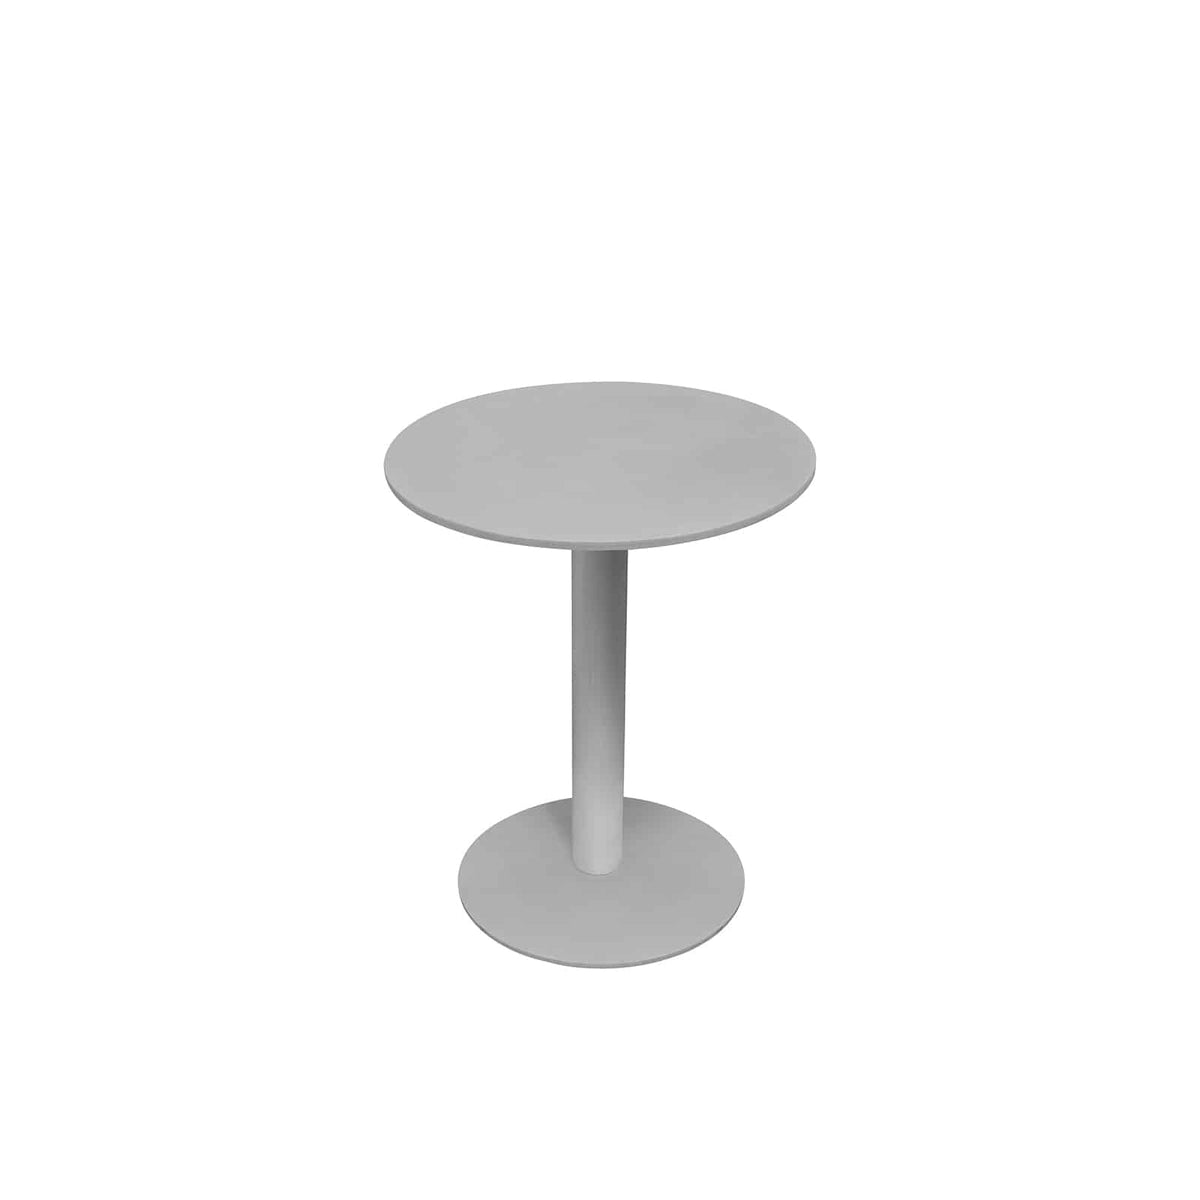 Source Furniture Source Furniture Tides Side Table Round Side Table Round - Rattan Imports